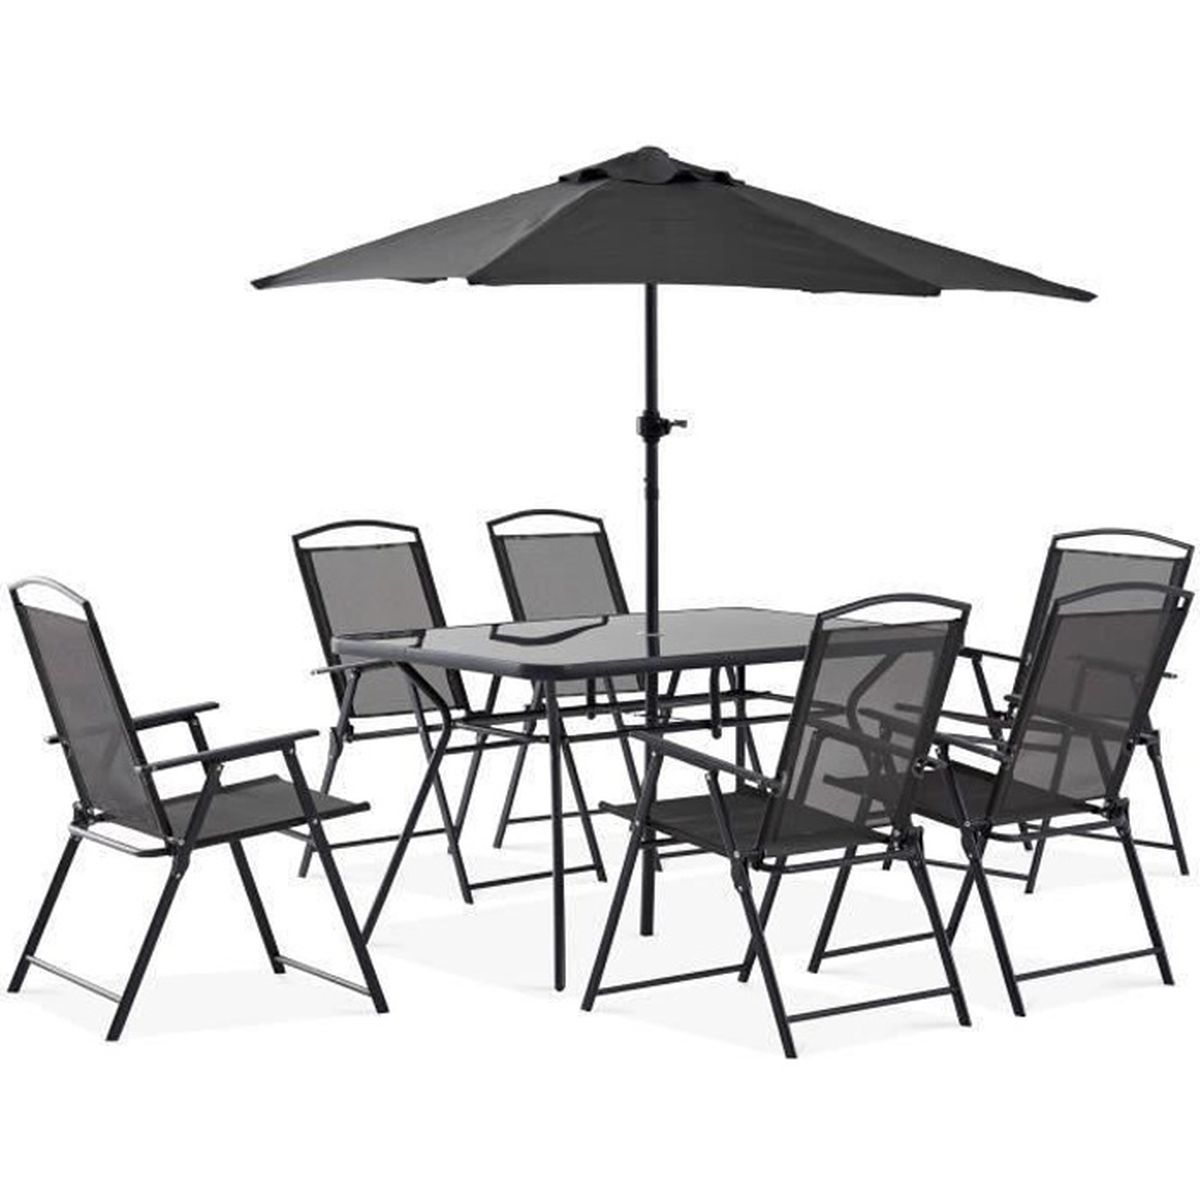 table de jardin avec parasol achat vente pas cher. Black Bedroom Furniture Sets. Home Design Ideas